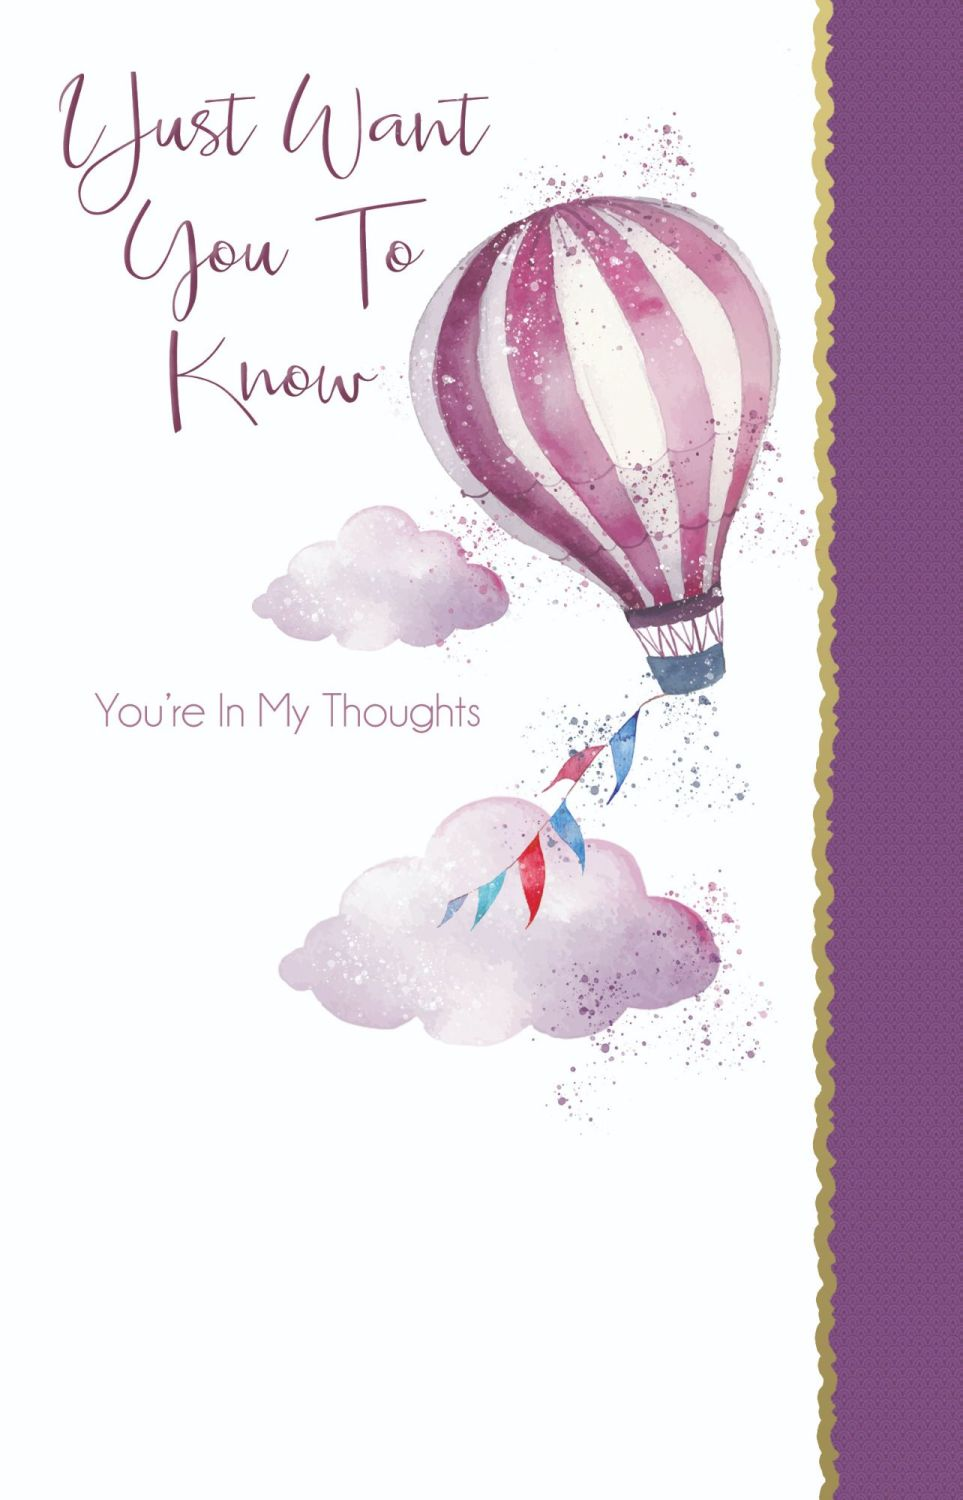 Thinking Of You Cards - I JUST Want You To KNOW - You're IN My THOUGHTS - C